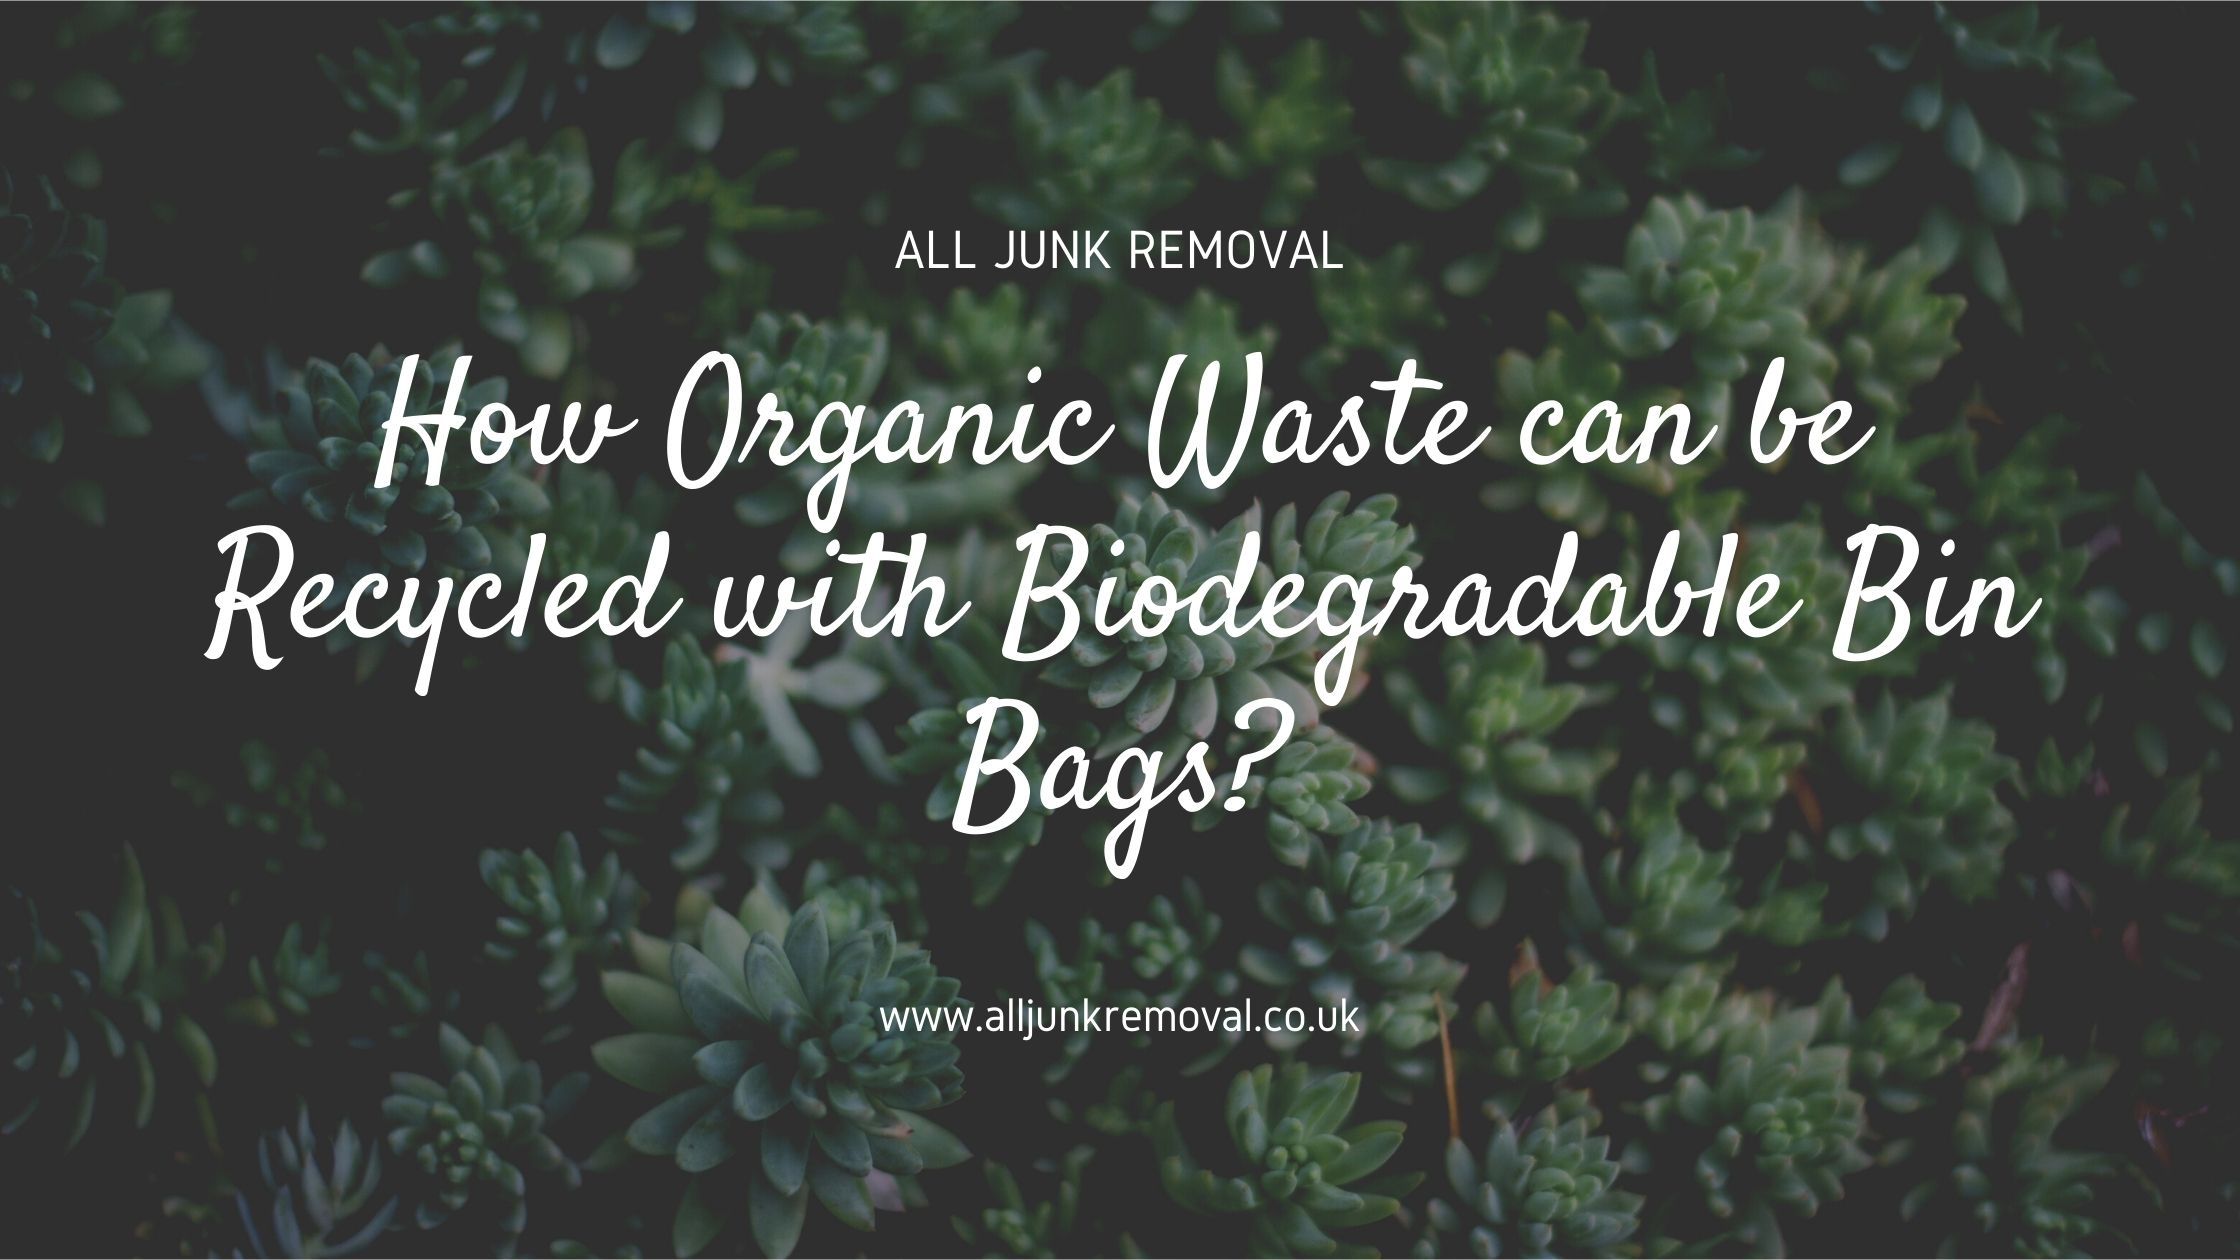 Waste Recycle with Biodegradable Bin Bags